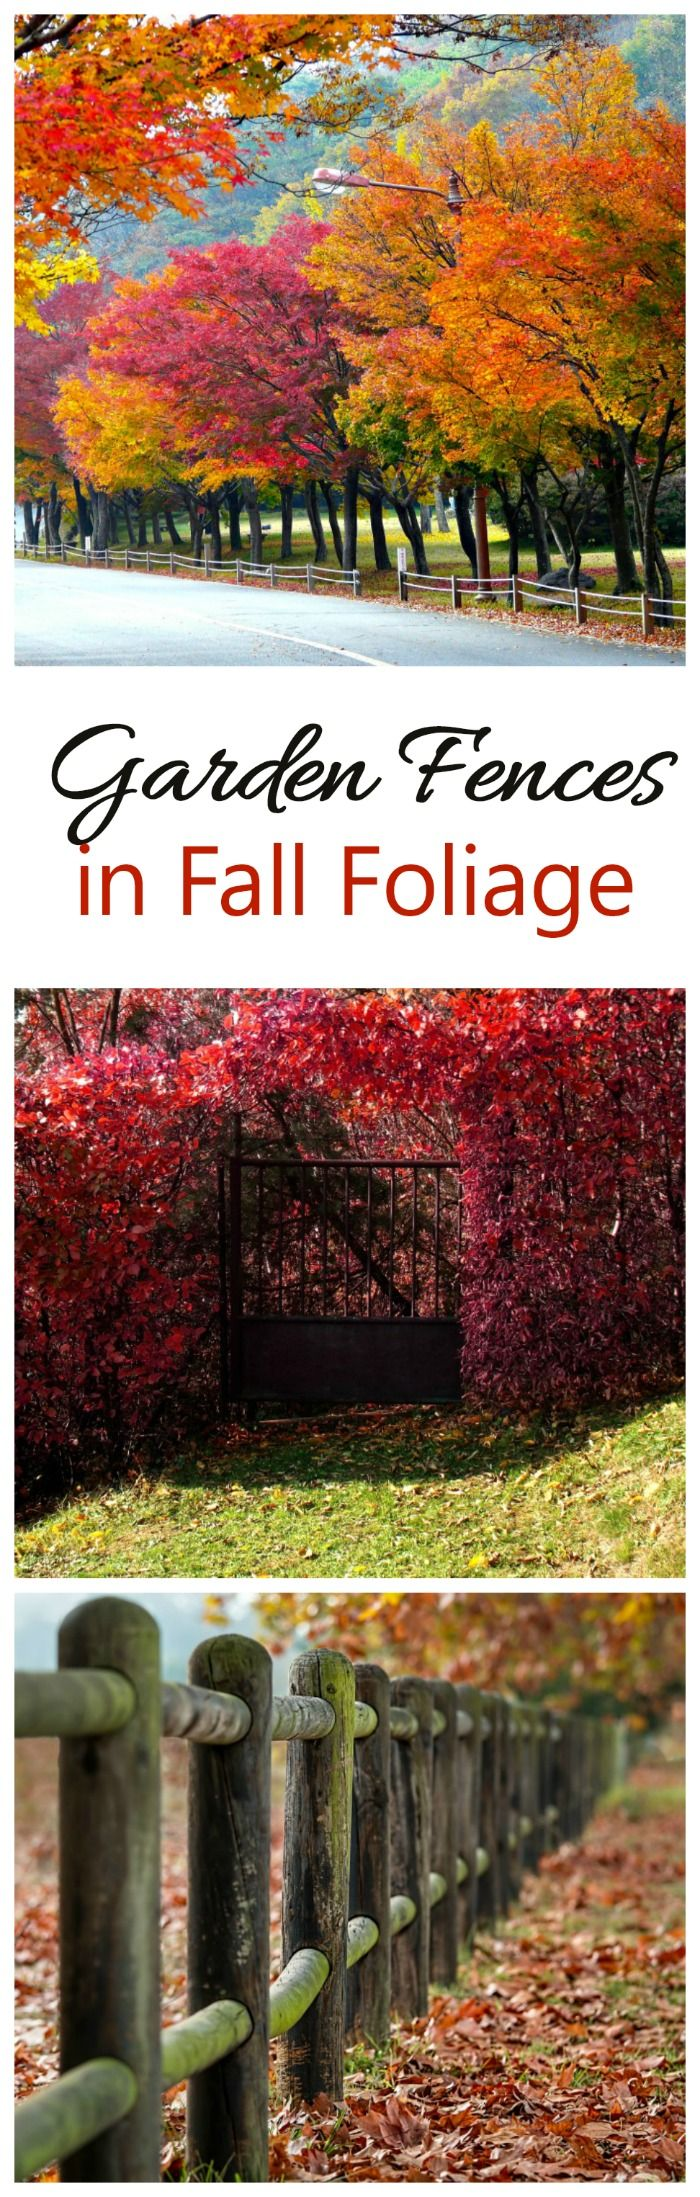 Is fall foliage at its peak where you live? Here in NC, the colors are ablaze. In these photos garden fences and gates, surrounded by the colorful fall leaves, tell the story of the change of seasons beautifully. I was born in Maine and fall has always been my time of the year. Nature turns on ...